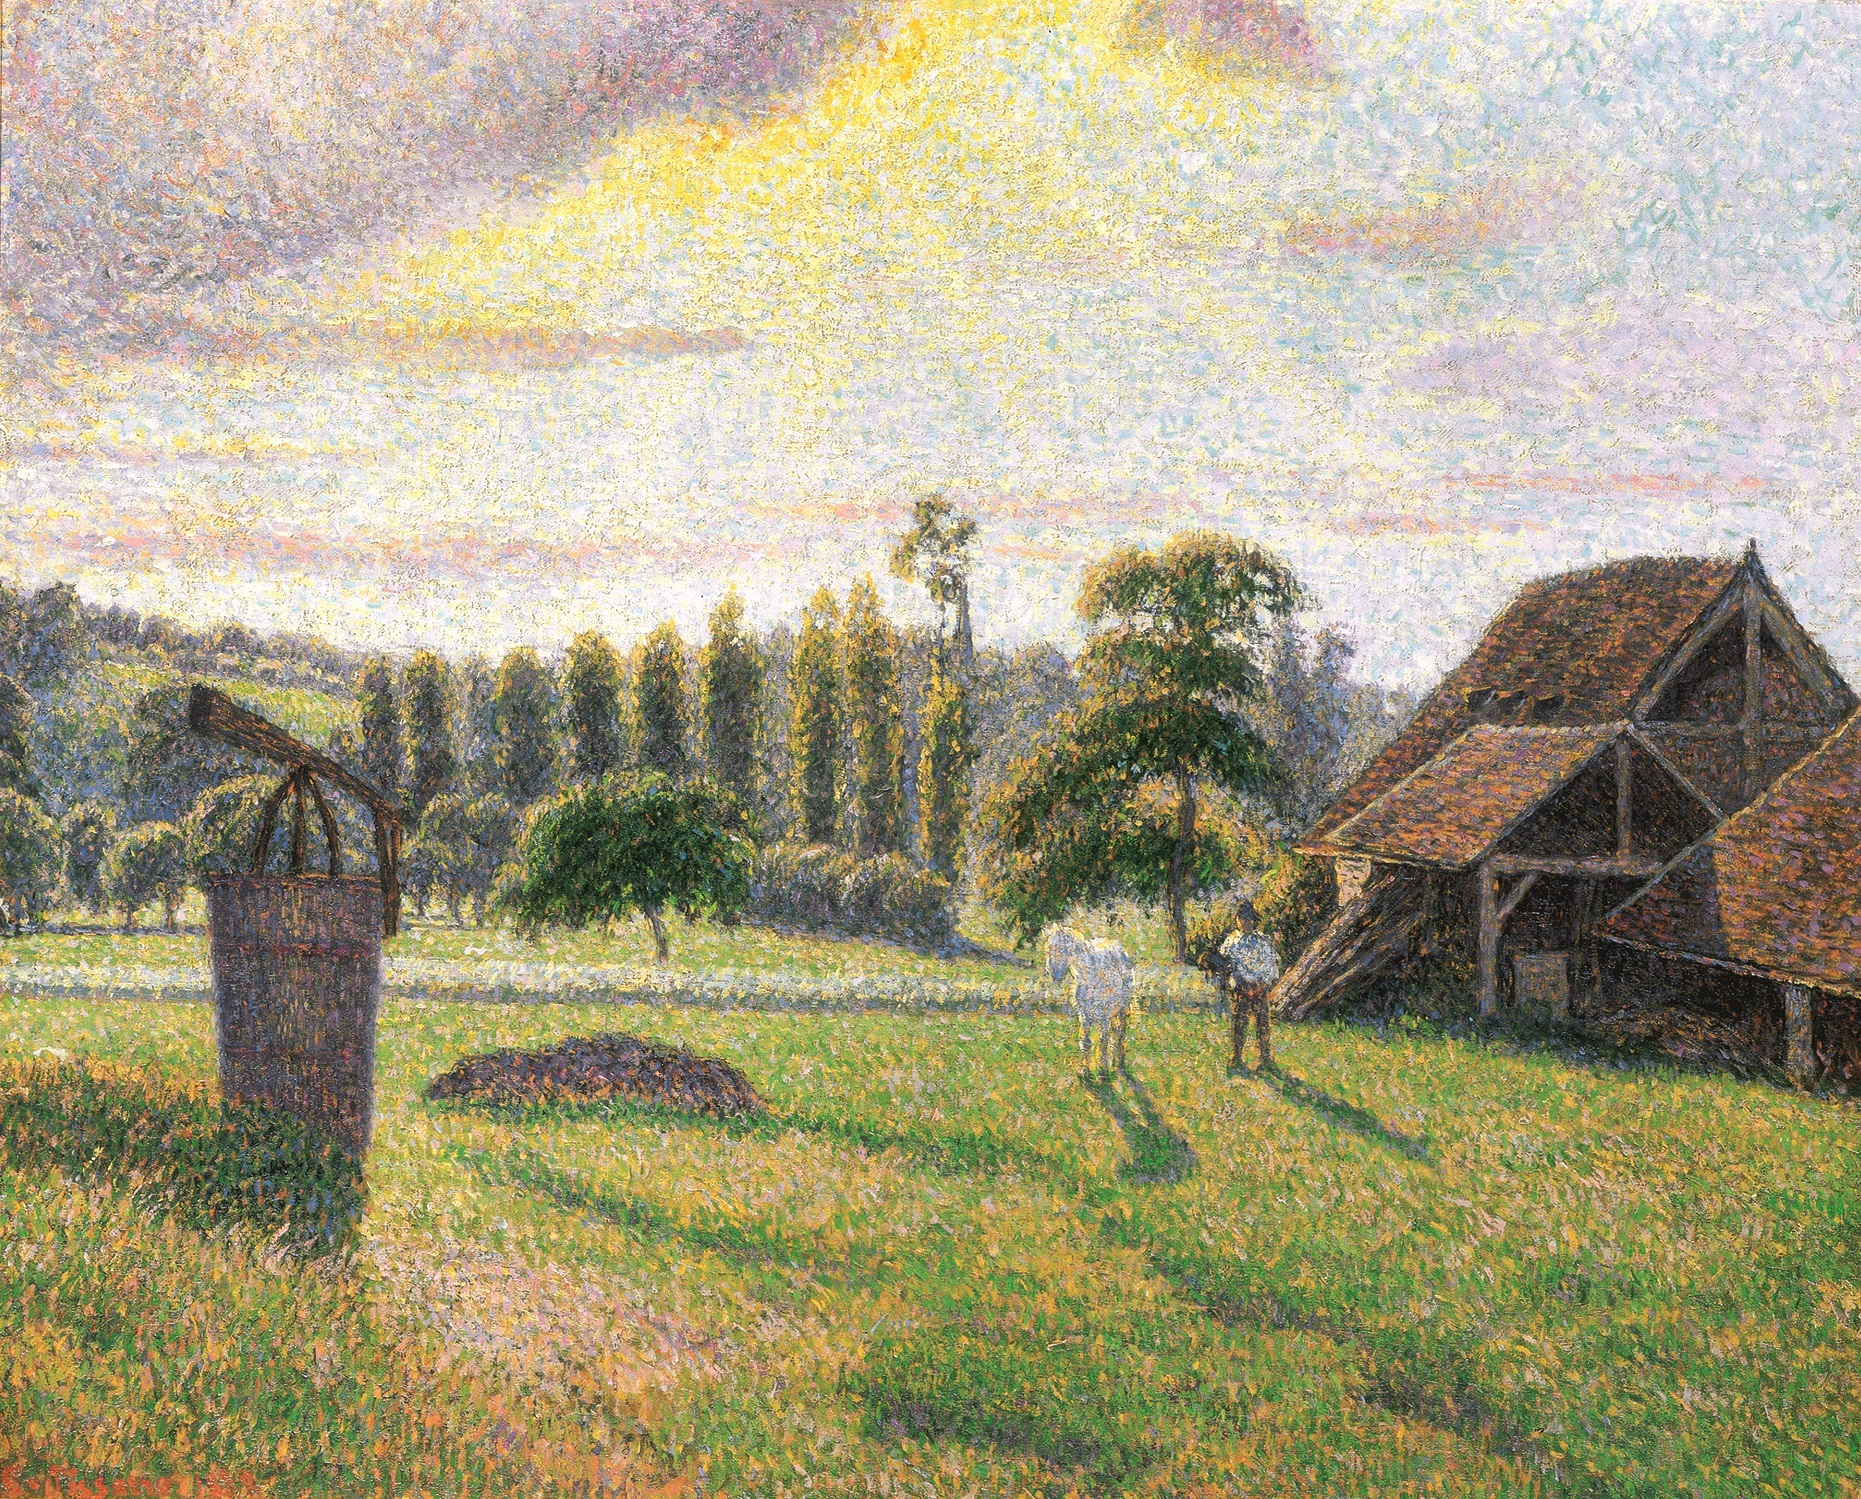 Camille Pissarro (1830-1903), The Delafolie Brickyard at Éragny, 1886, oil on canvas. Private collection